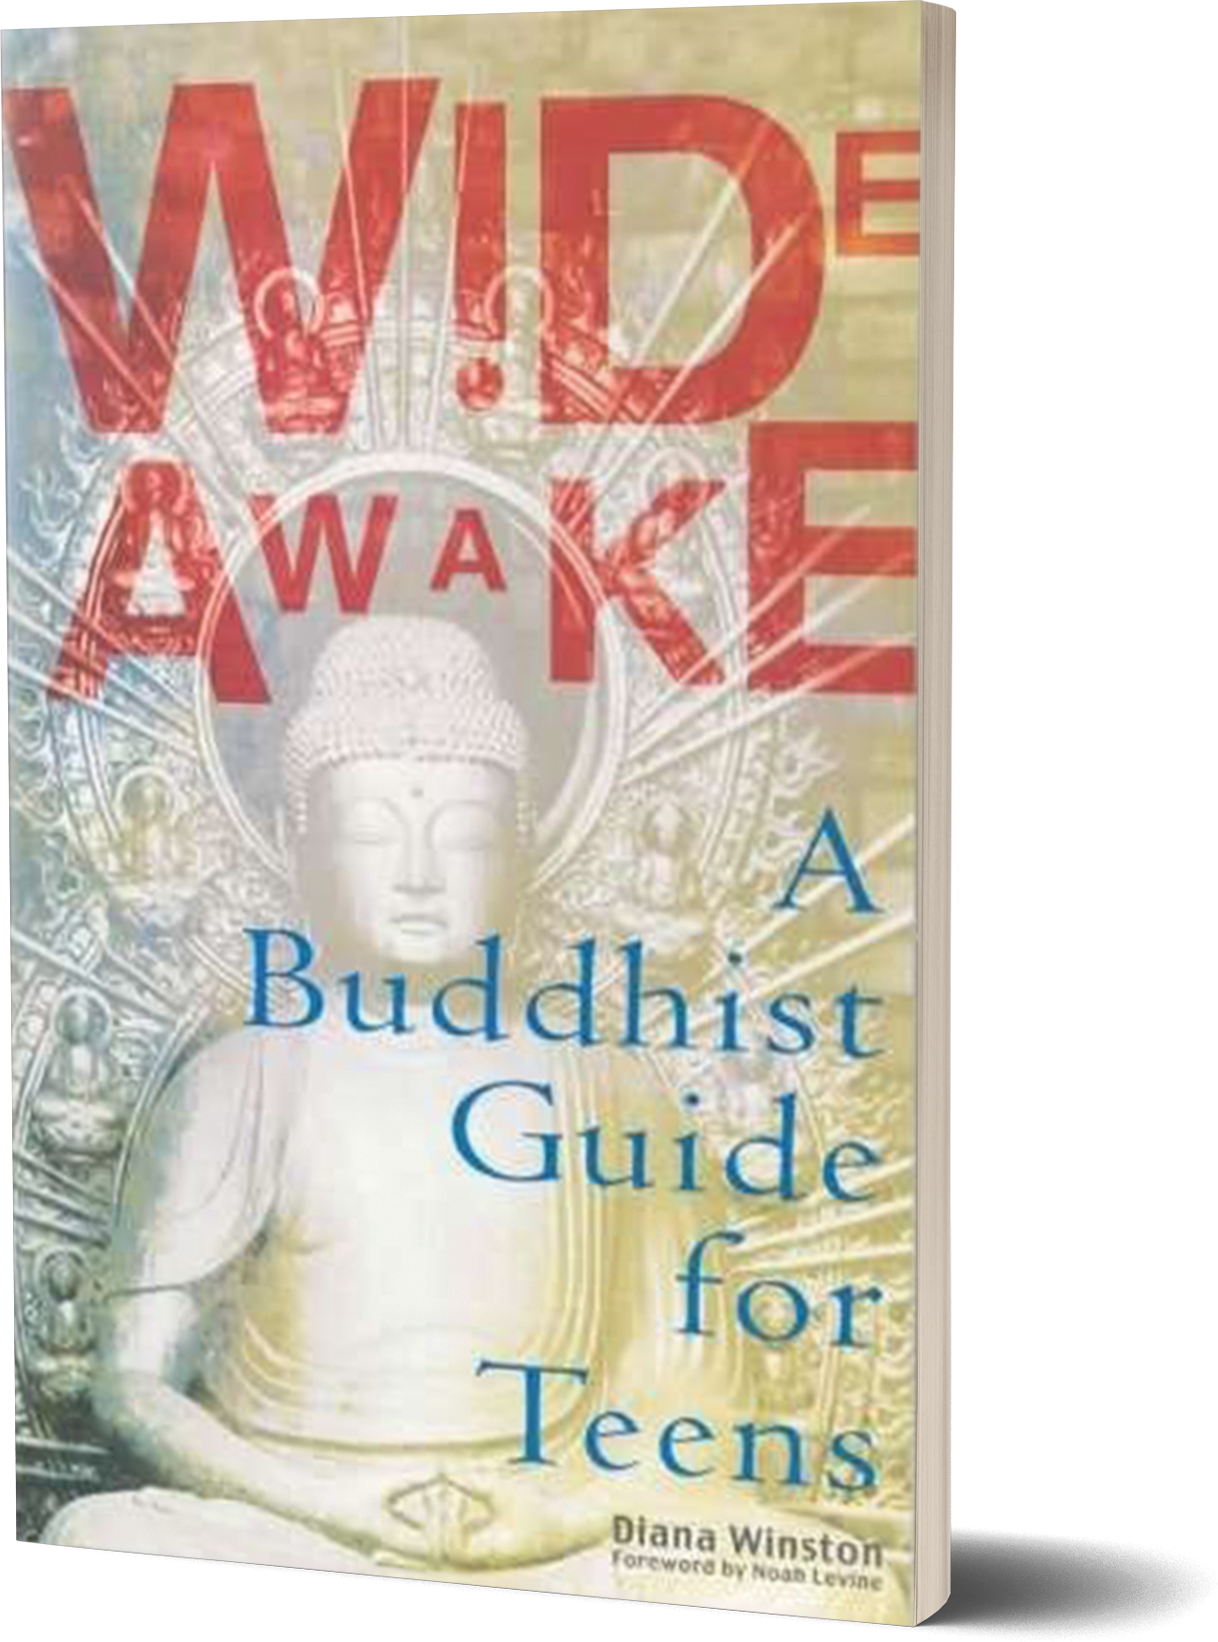 Wide Awake- A Buddhist Guide for Teens by Diana Winston.png